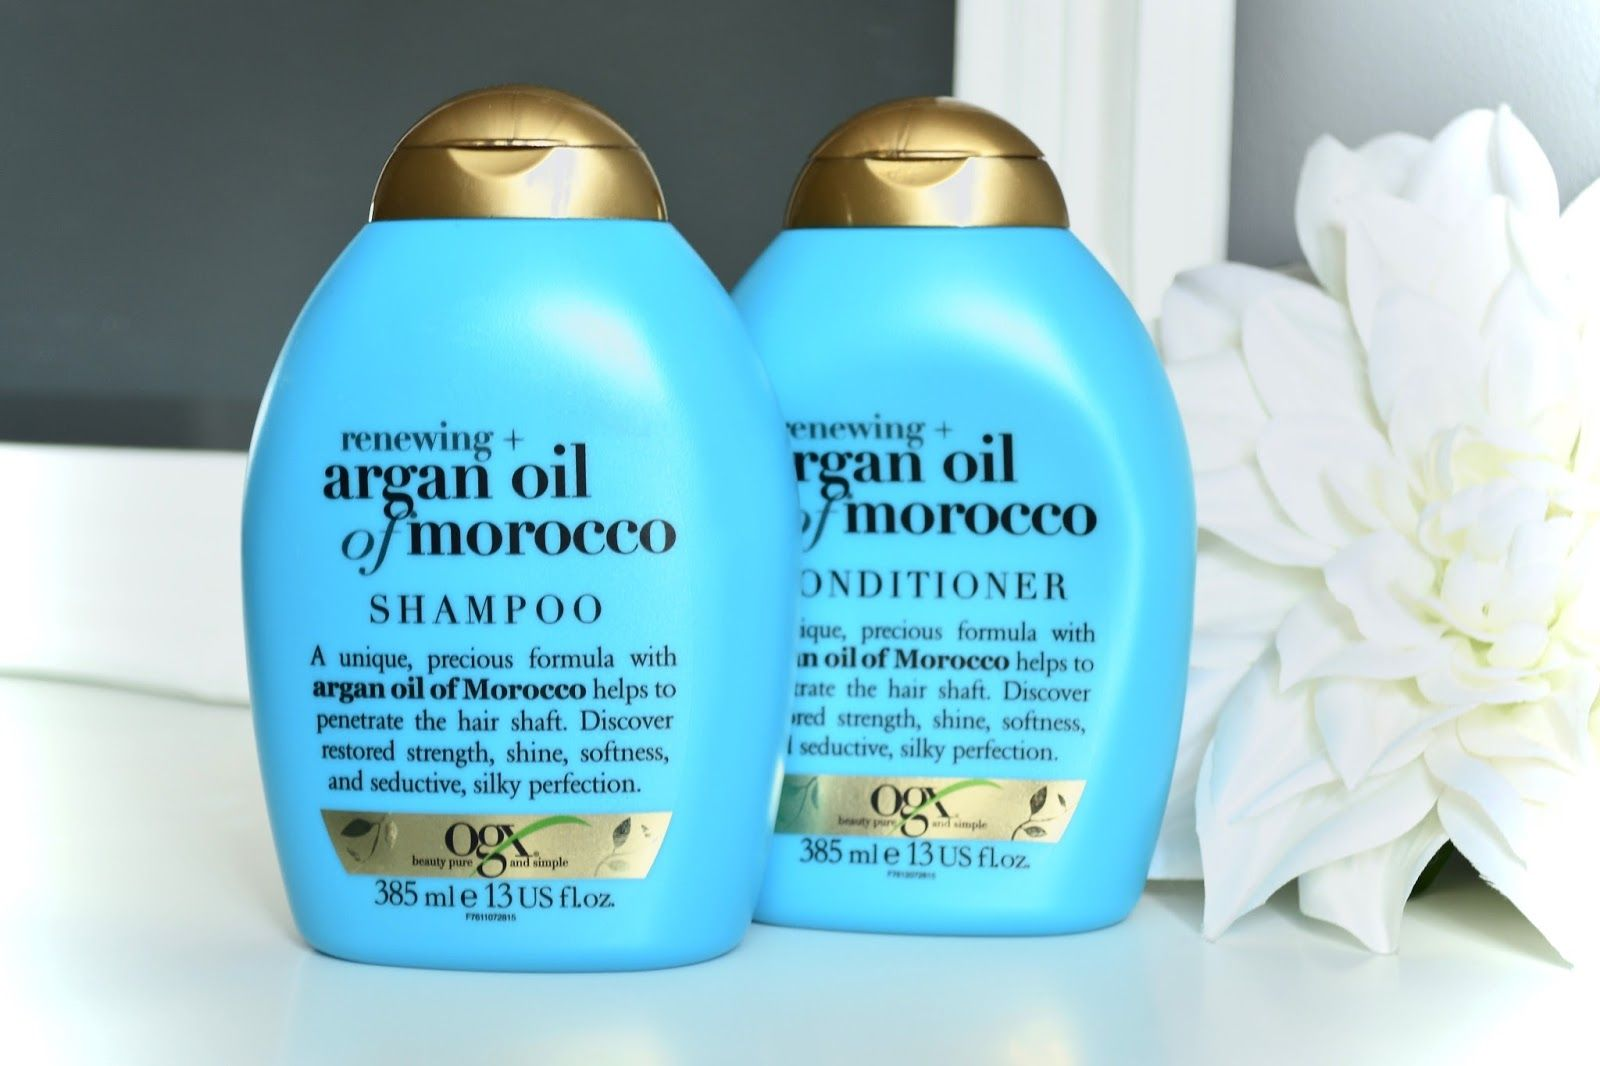 argan oil of morocco review